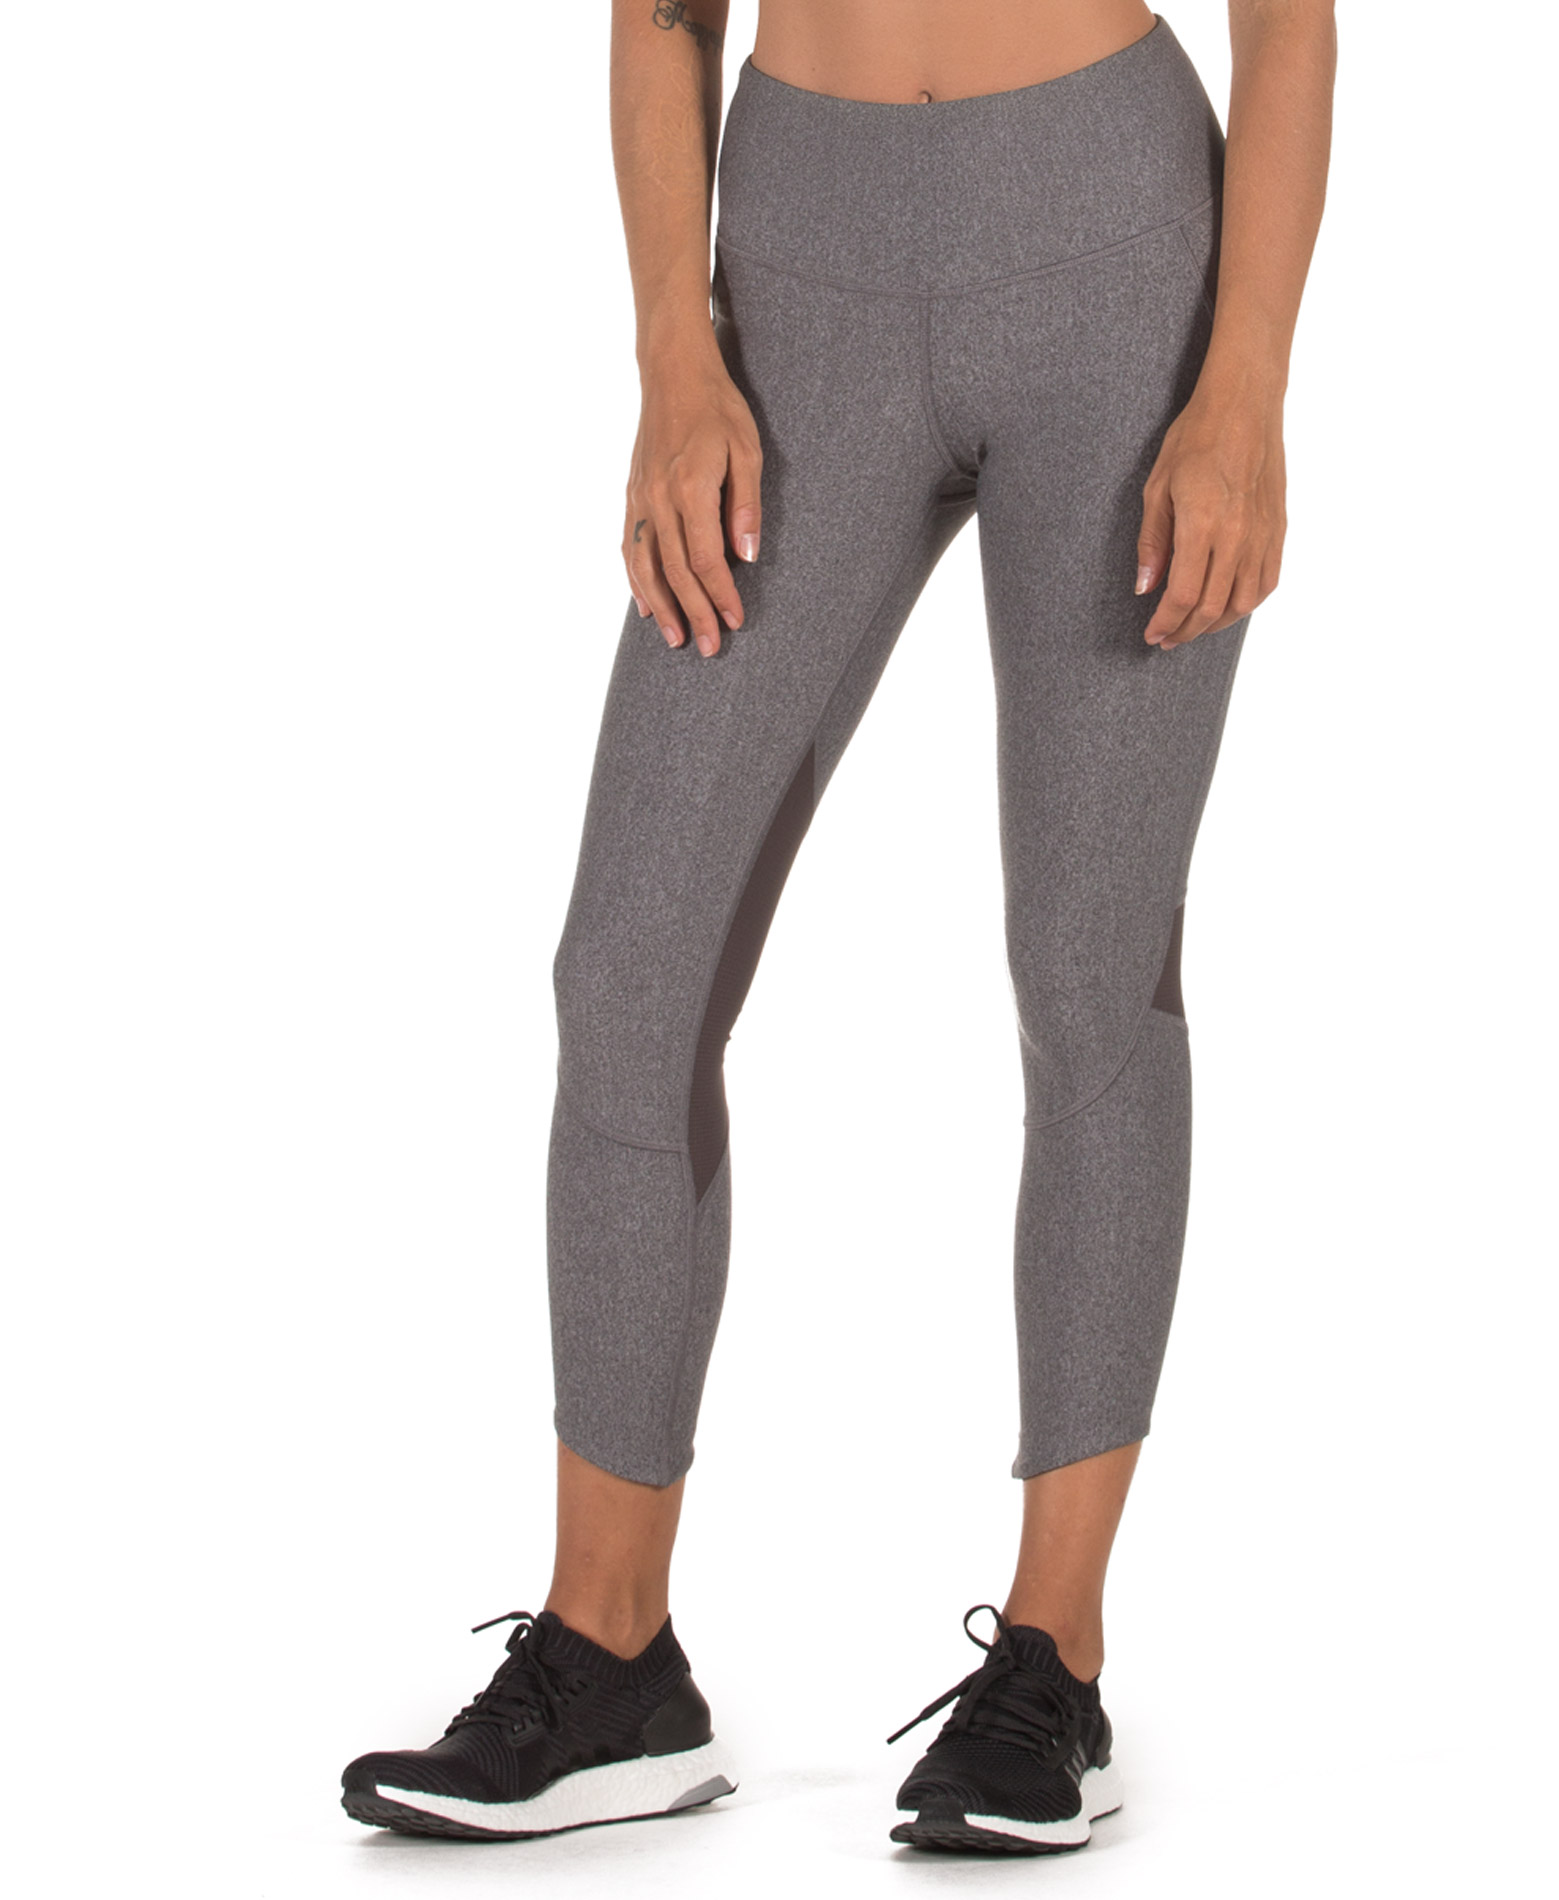 UNDER ARMOUR FLY FAST CROP 1317290-020 Ανθρακί